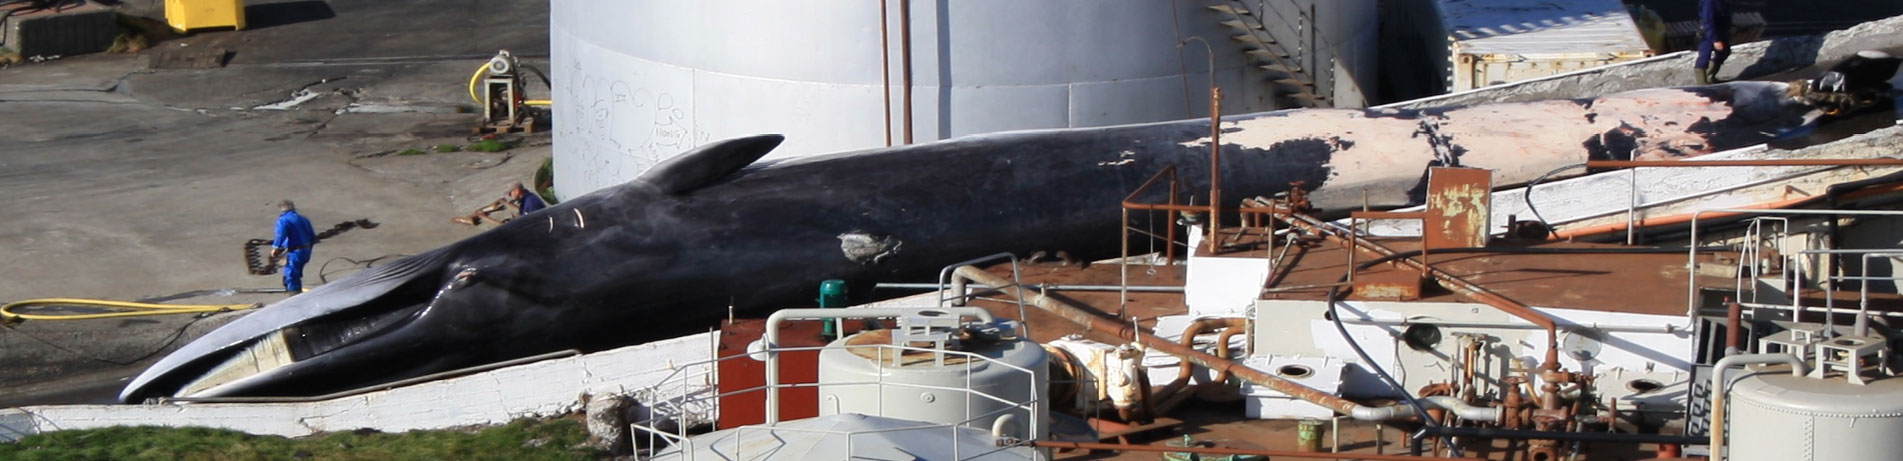 Dead fin whale being processed in a whaling factory, Reykjavik, Iceland